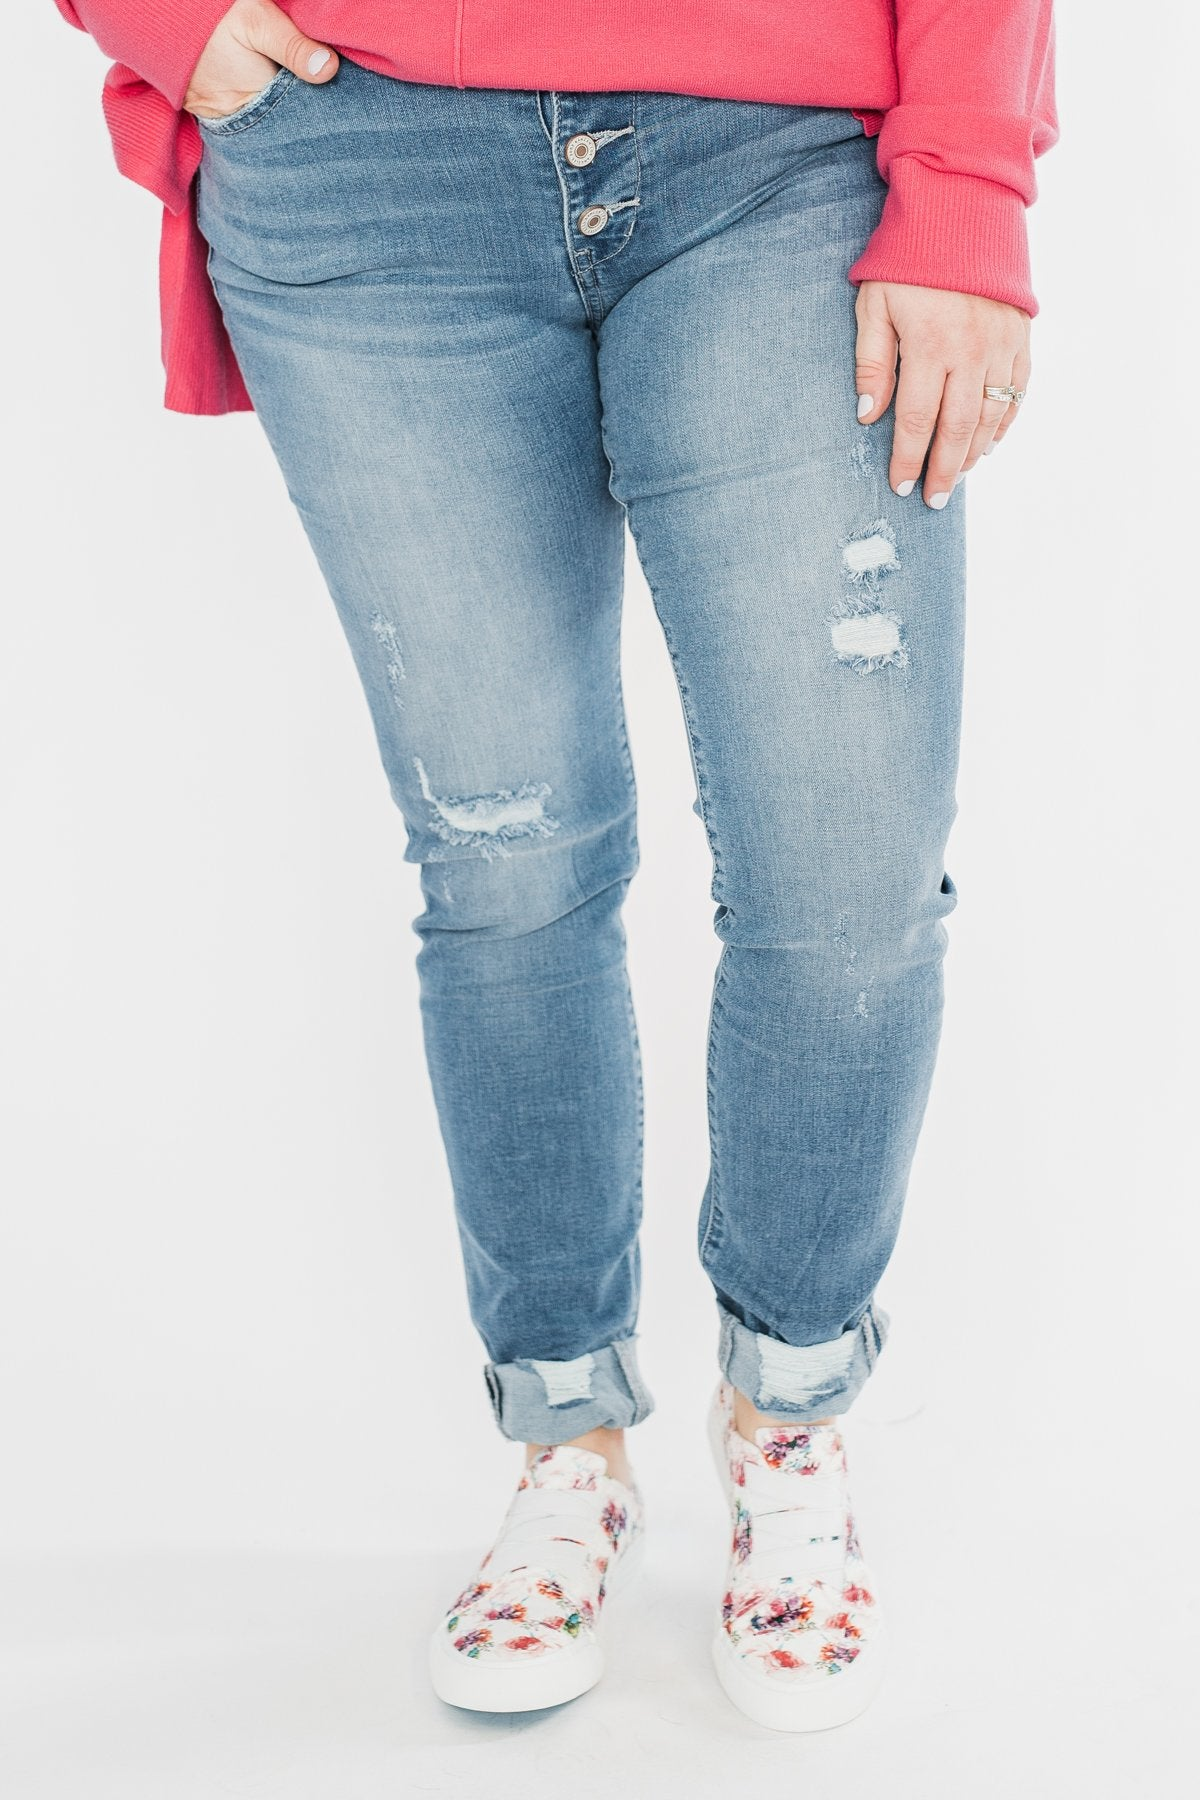 KanCan Reese Jeans- Medium Wash